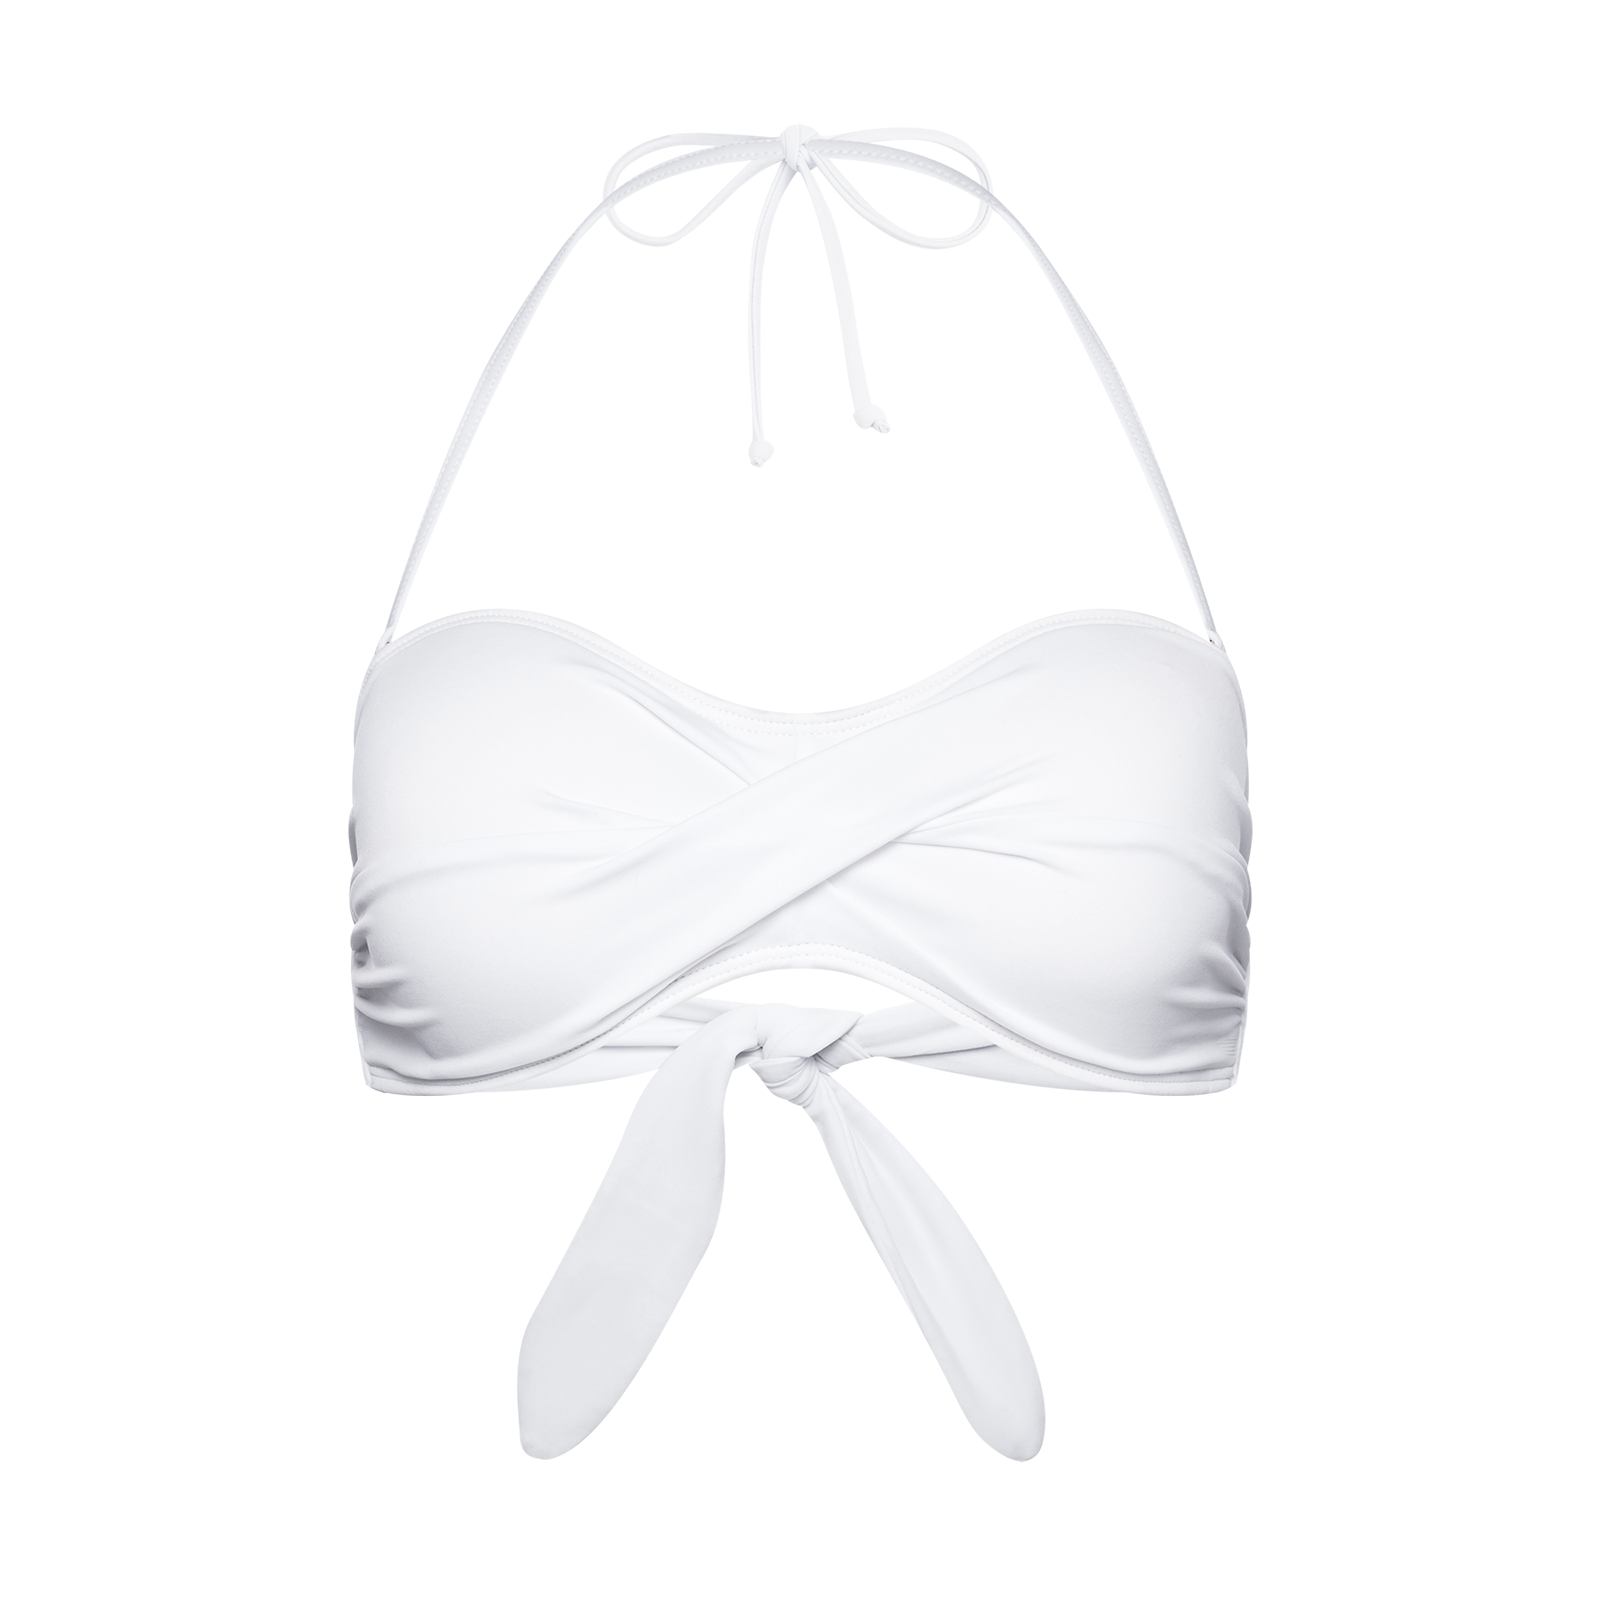 Swimsuit bra product photography